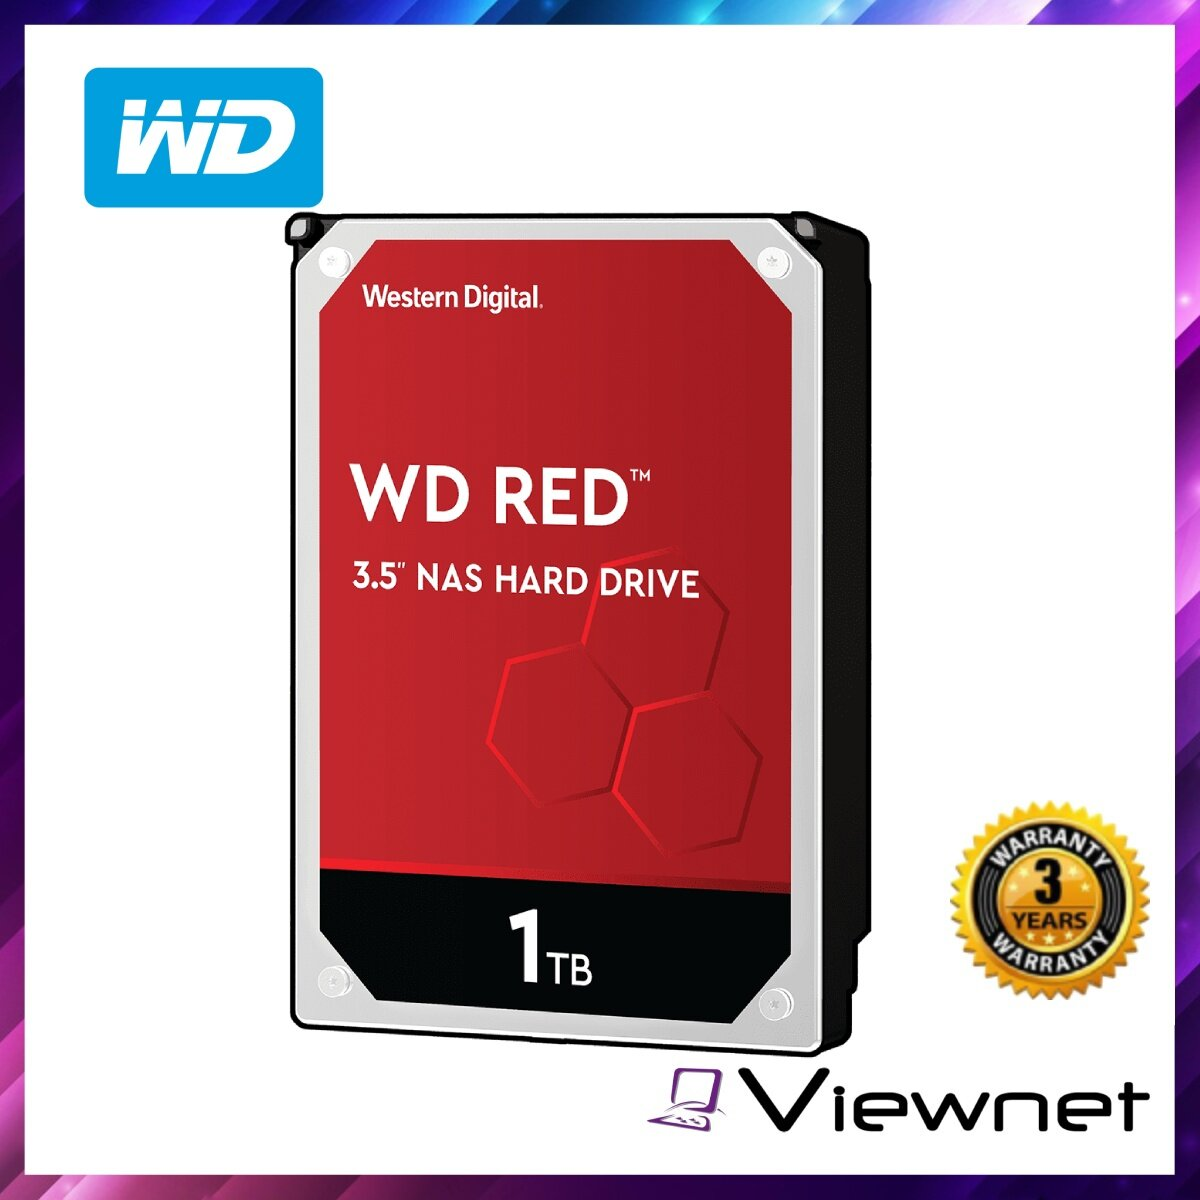 WD Western Digital Red 1TB / 2TB / 3TB / 4TB / 6TB / 8TB / 10TB / 12TB NAS SATA Internal Hard Drive 5400rpm 64MB / 256MB